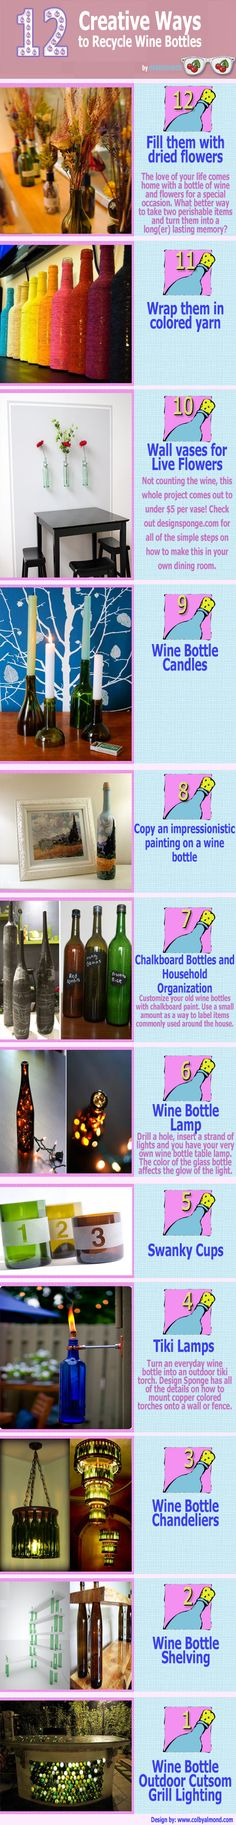 Uses for old wine bottles - Inspiring!